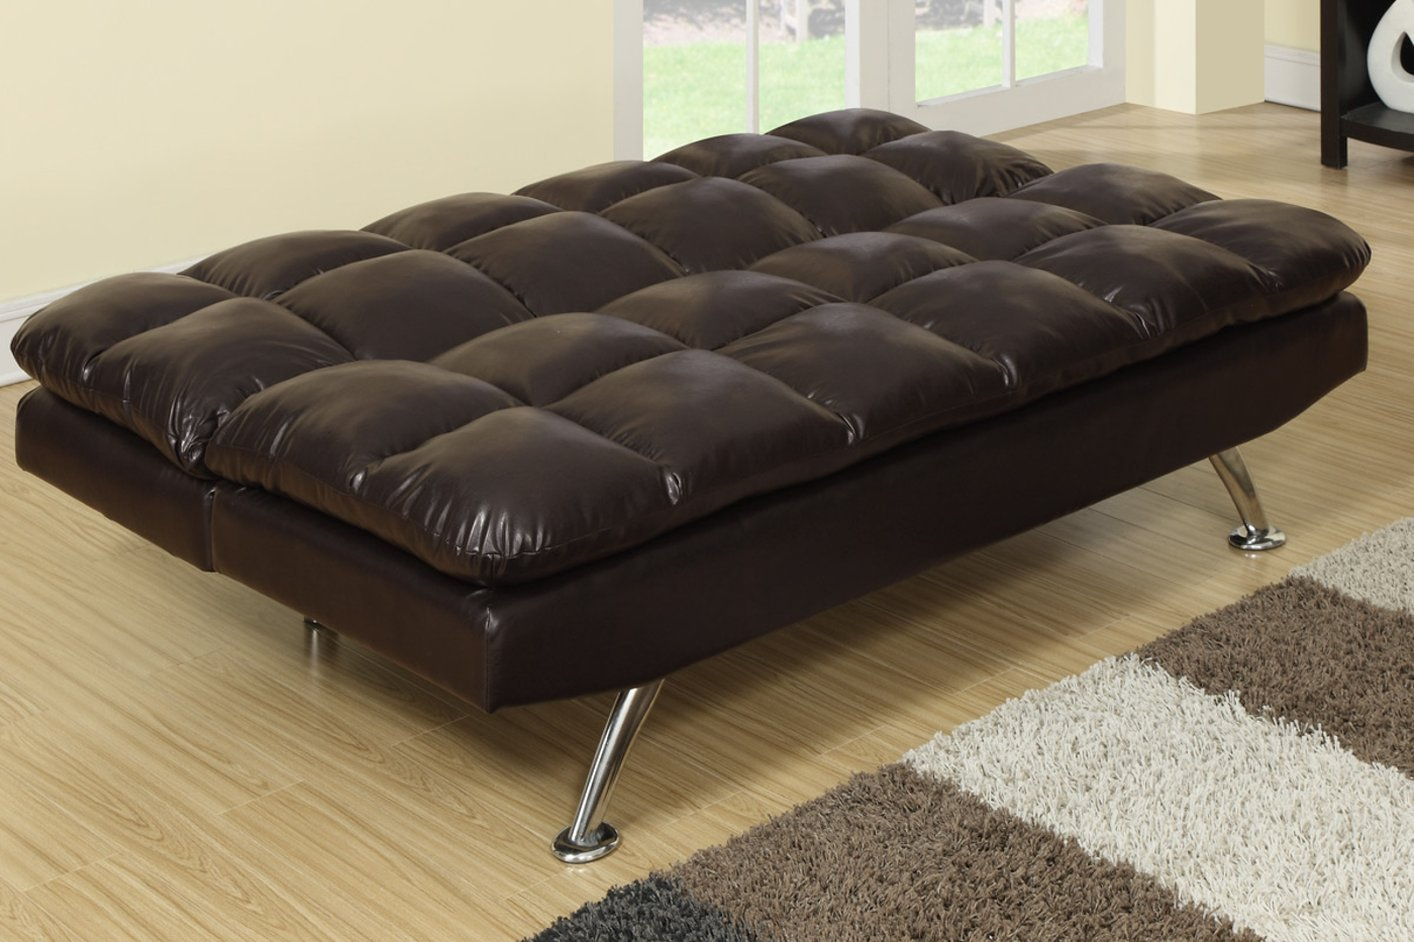 Poundex F7011 Brown Twin Size Leather Sofa Bed Steal A Sofa Furniture Outlet Los Angeles Ca